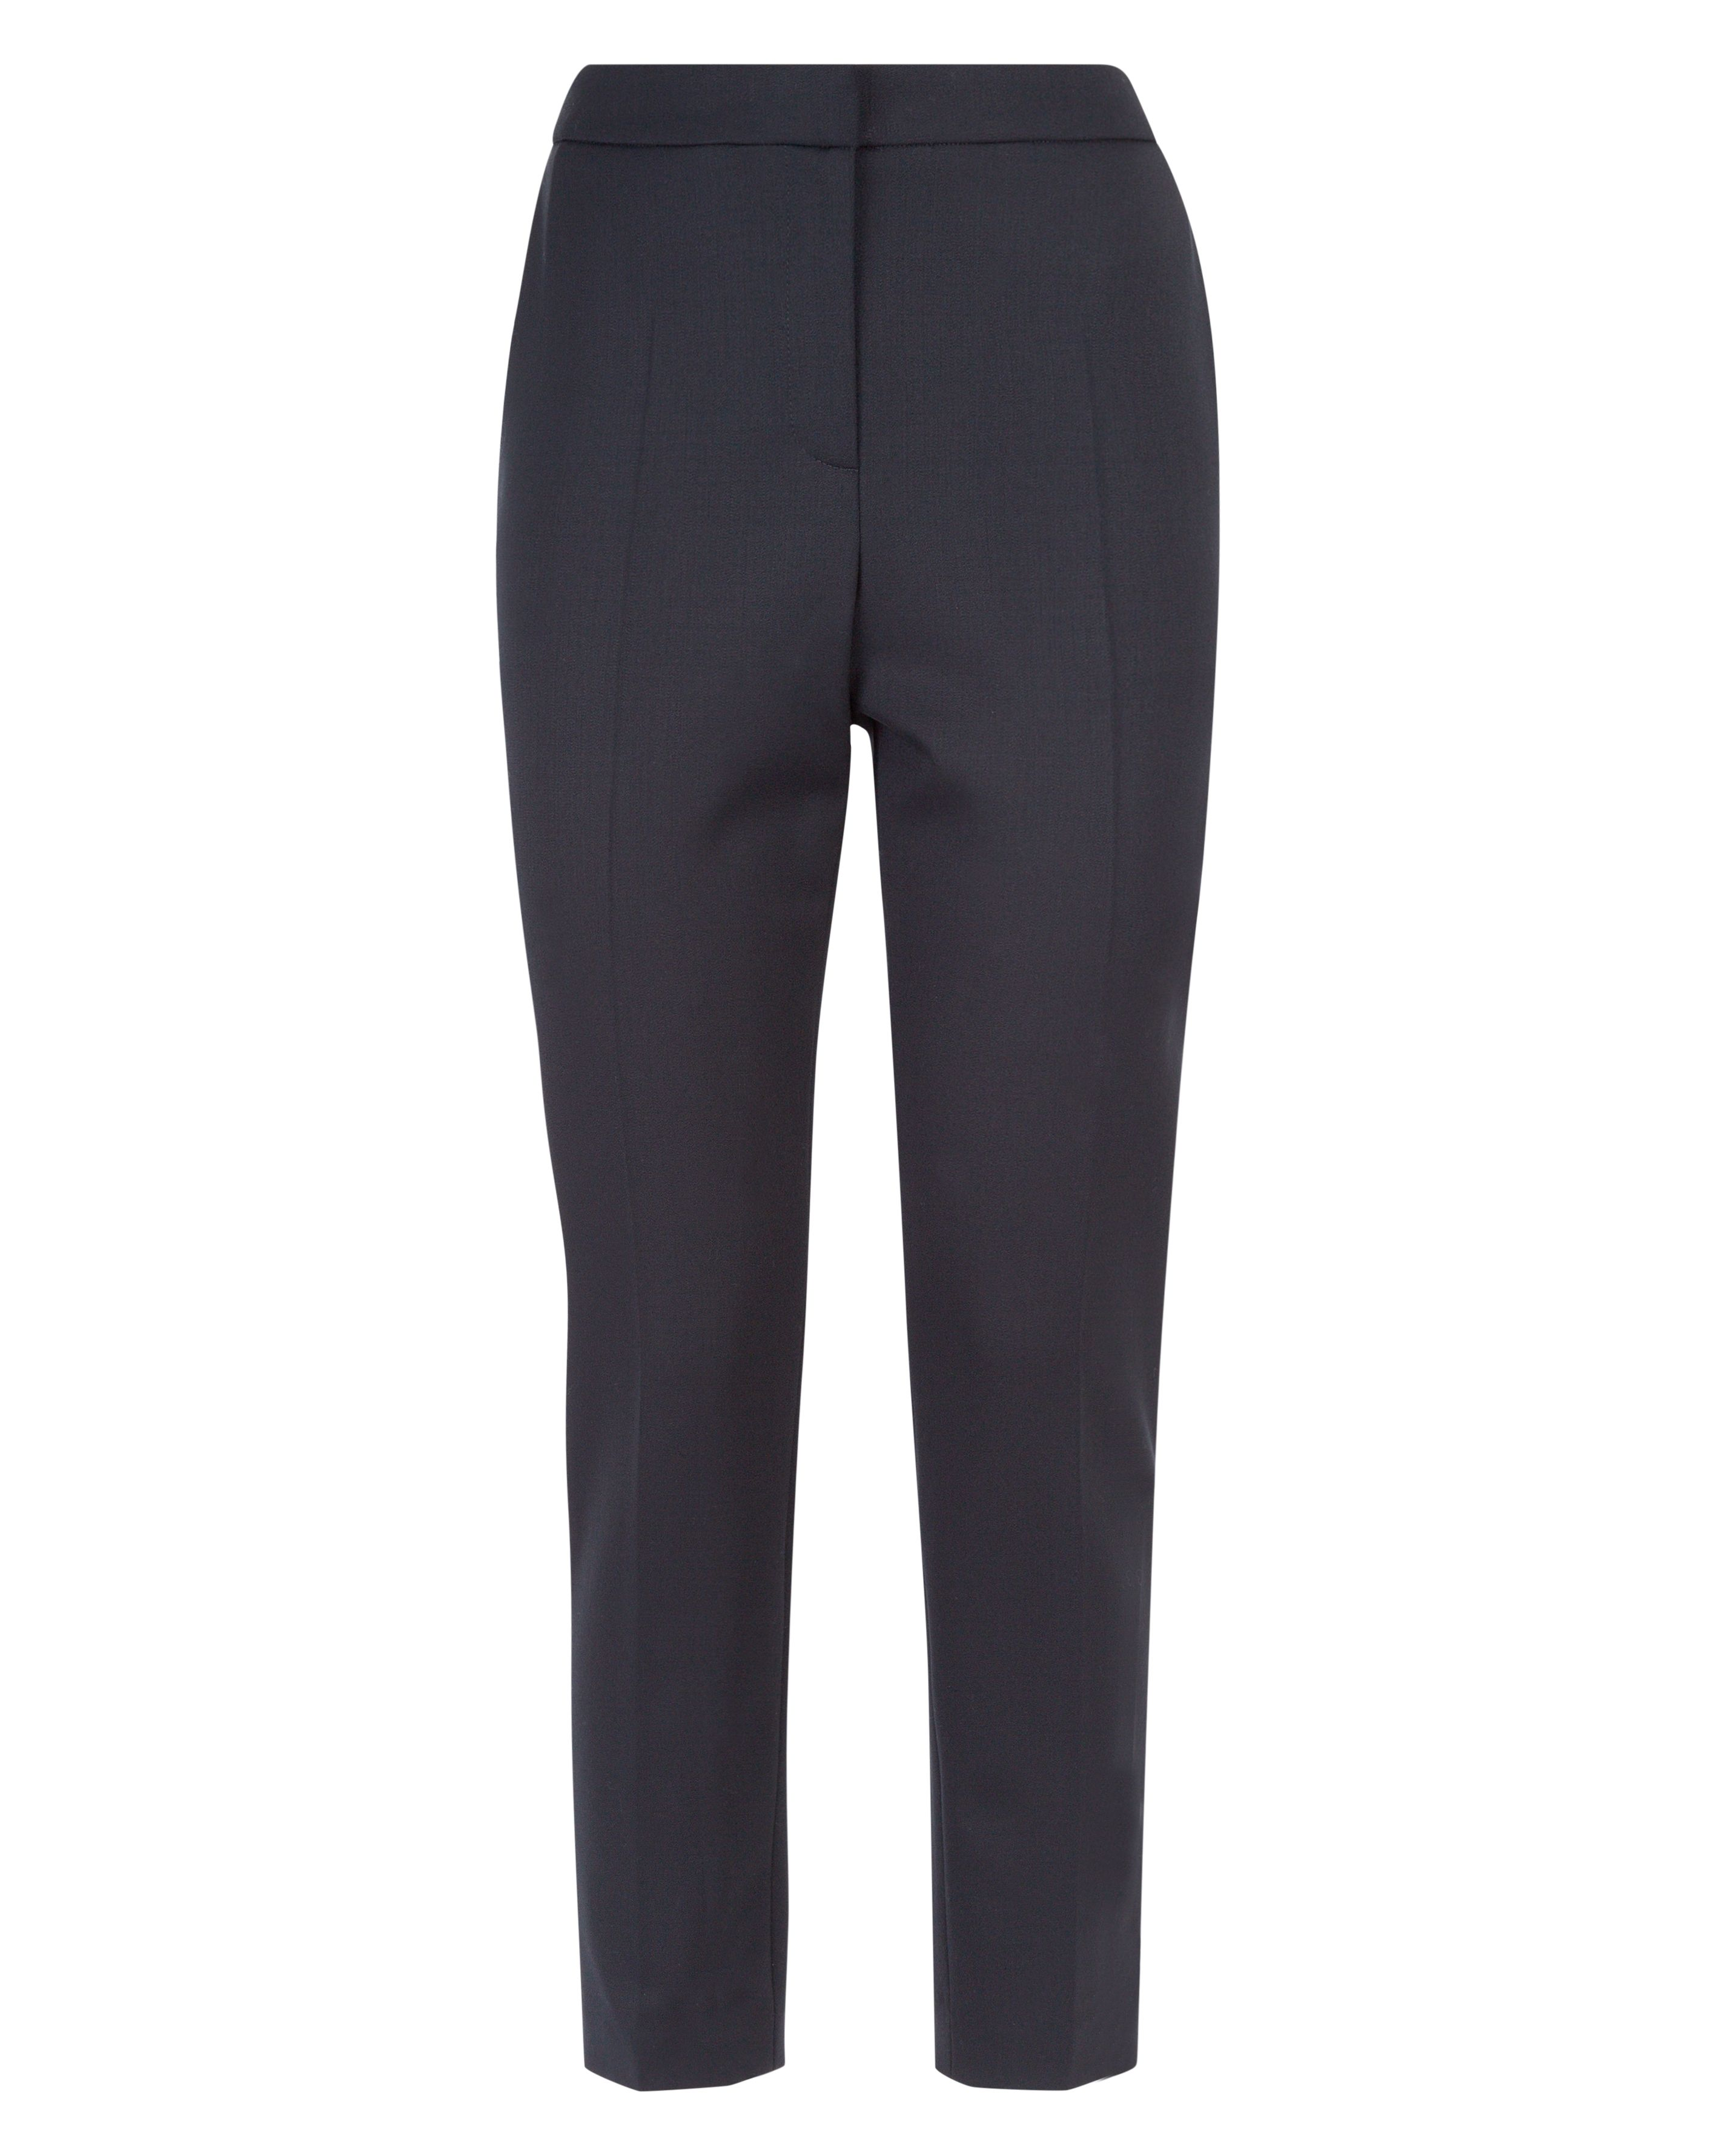 Jaeger Wool Cigarette Trousers, Black